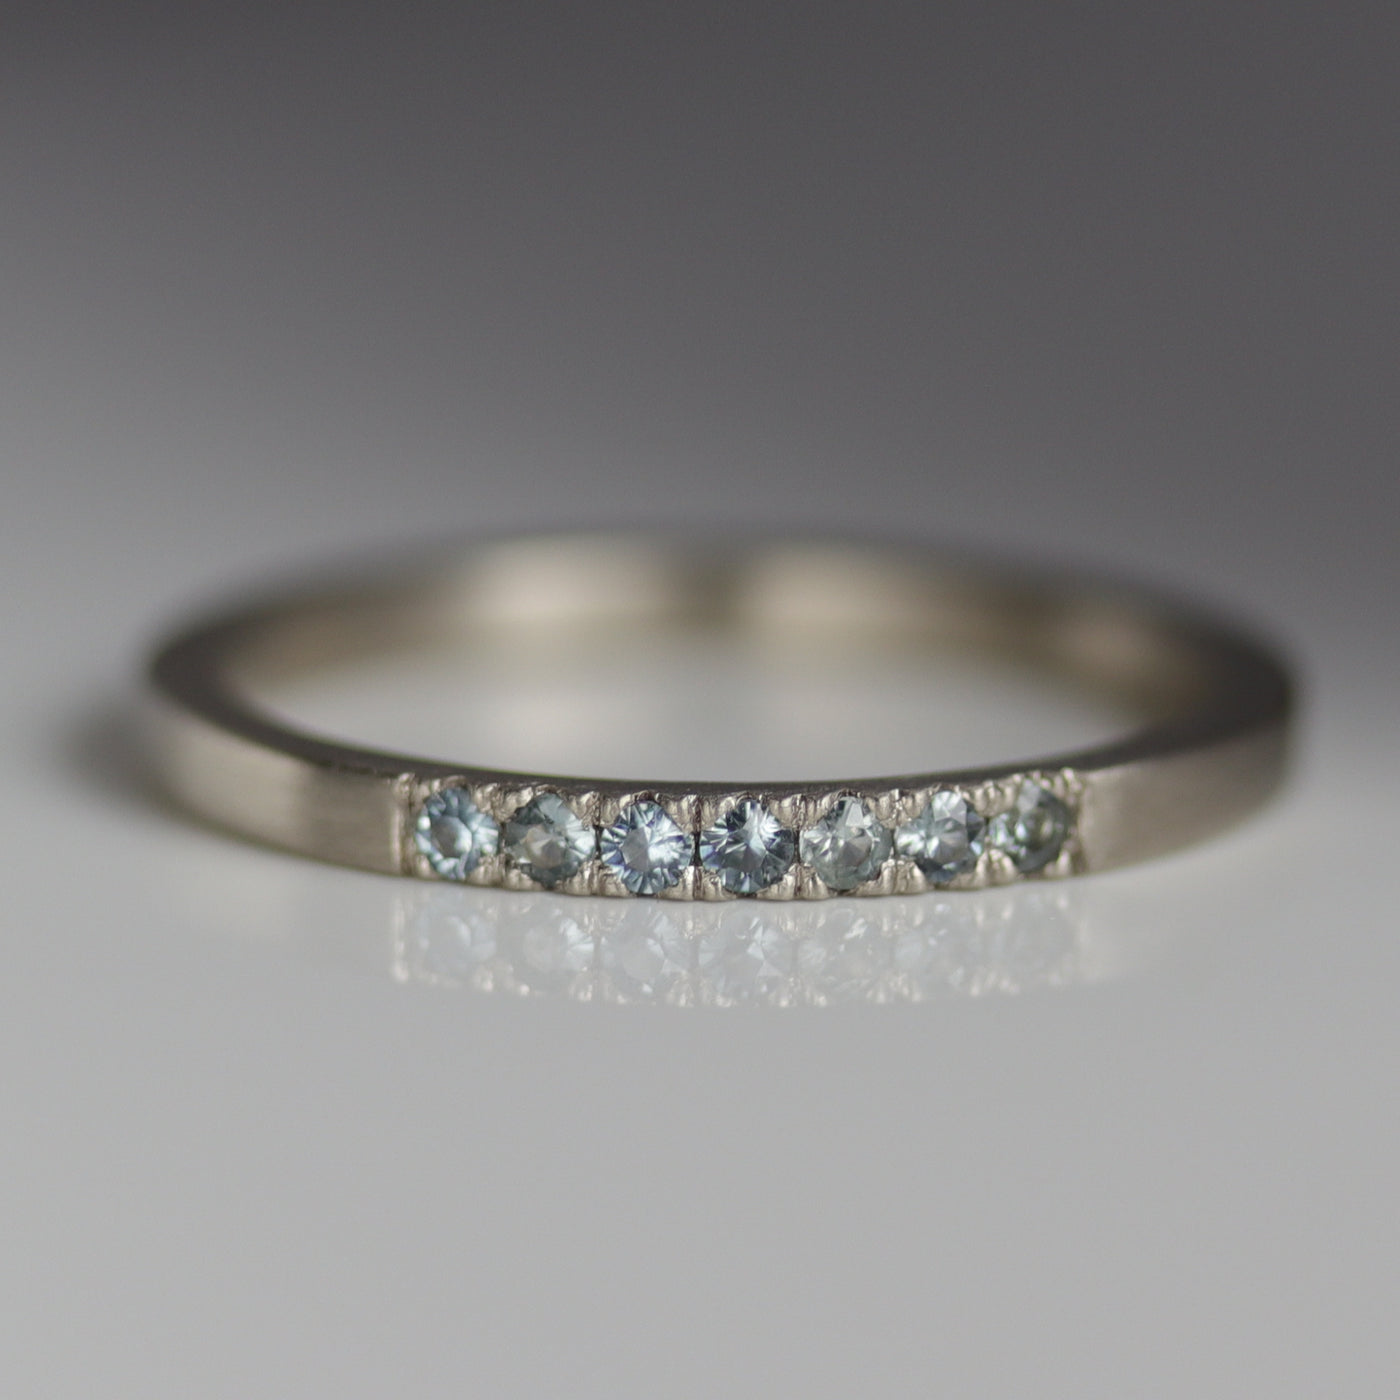 Pale Blue Sapphire Seven Stone Stacking Ring